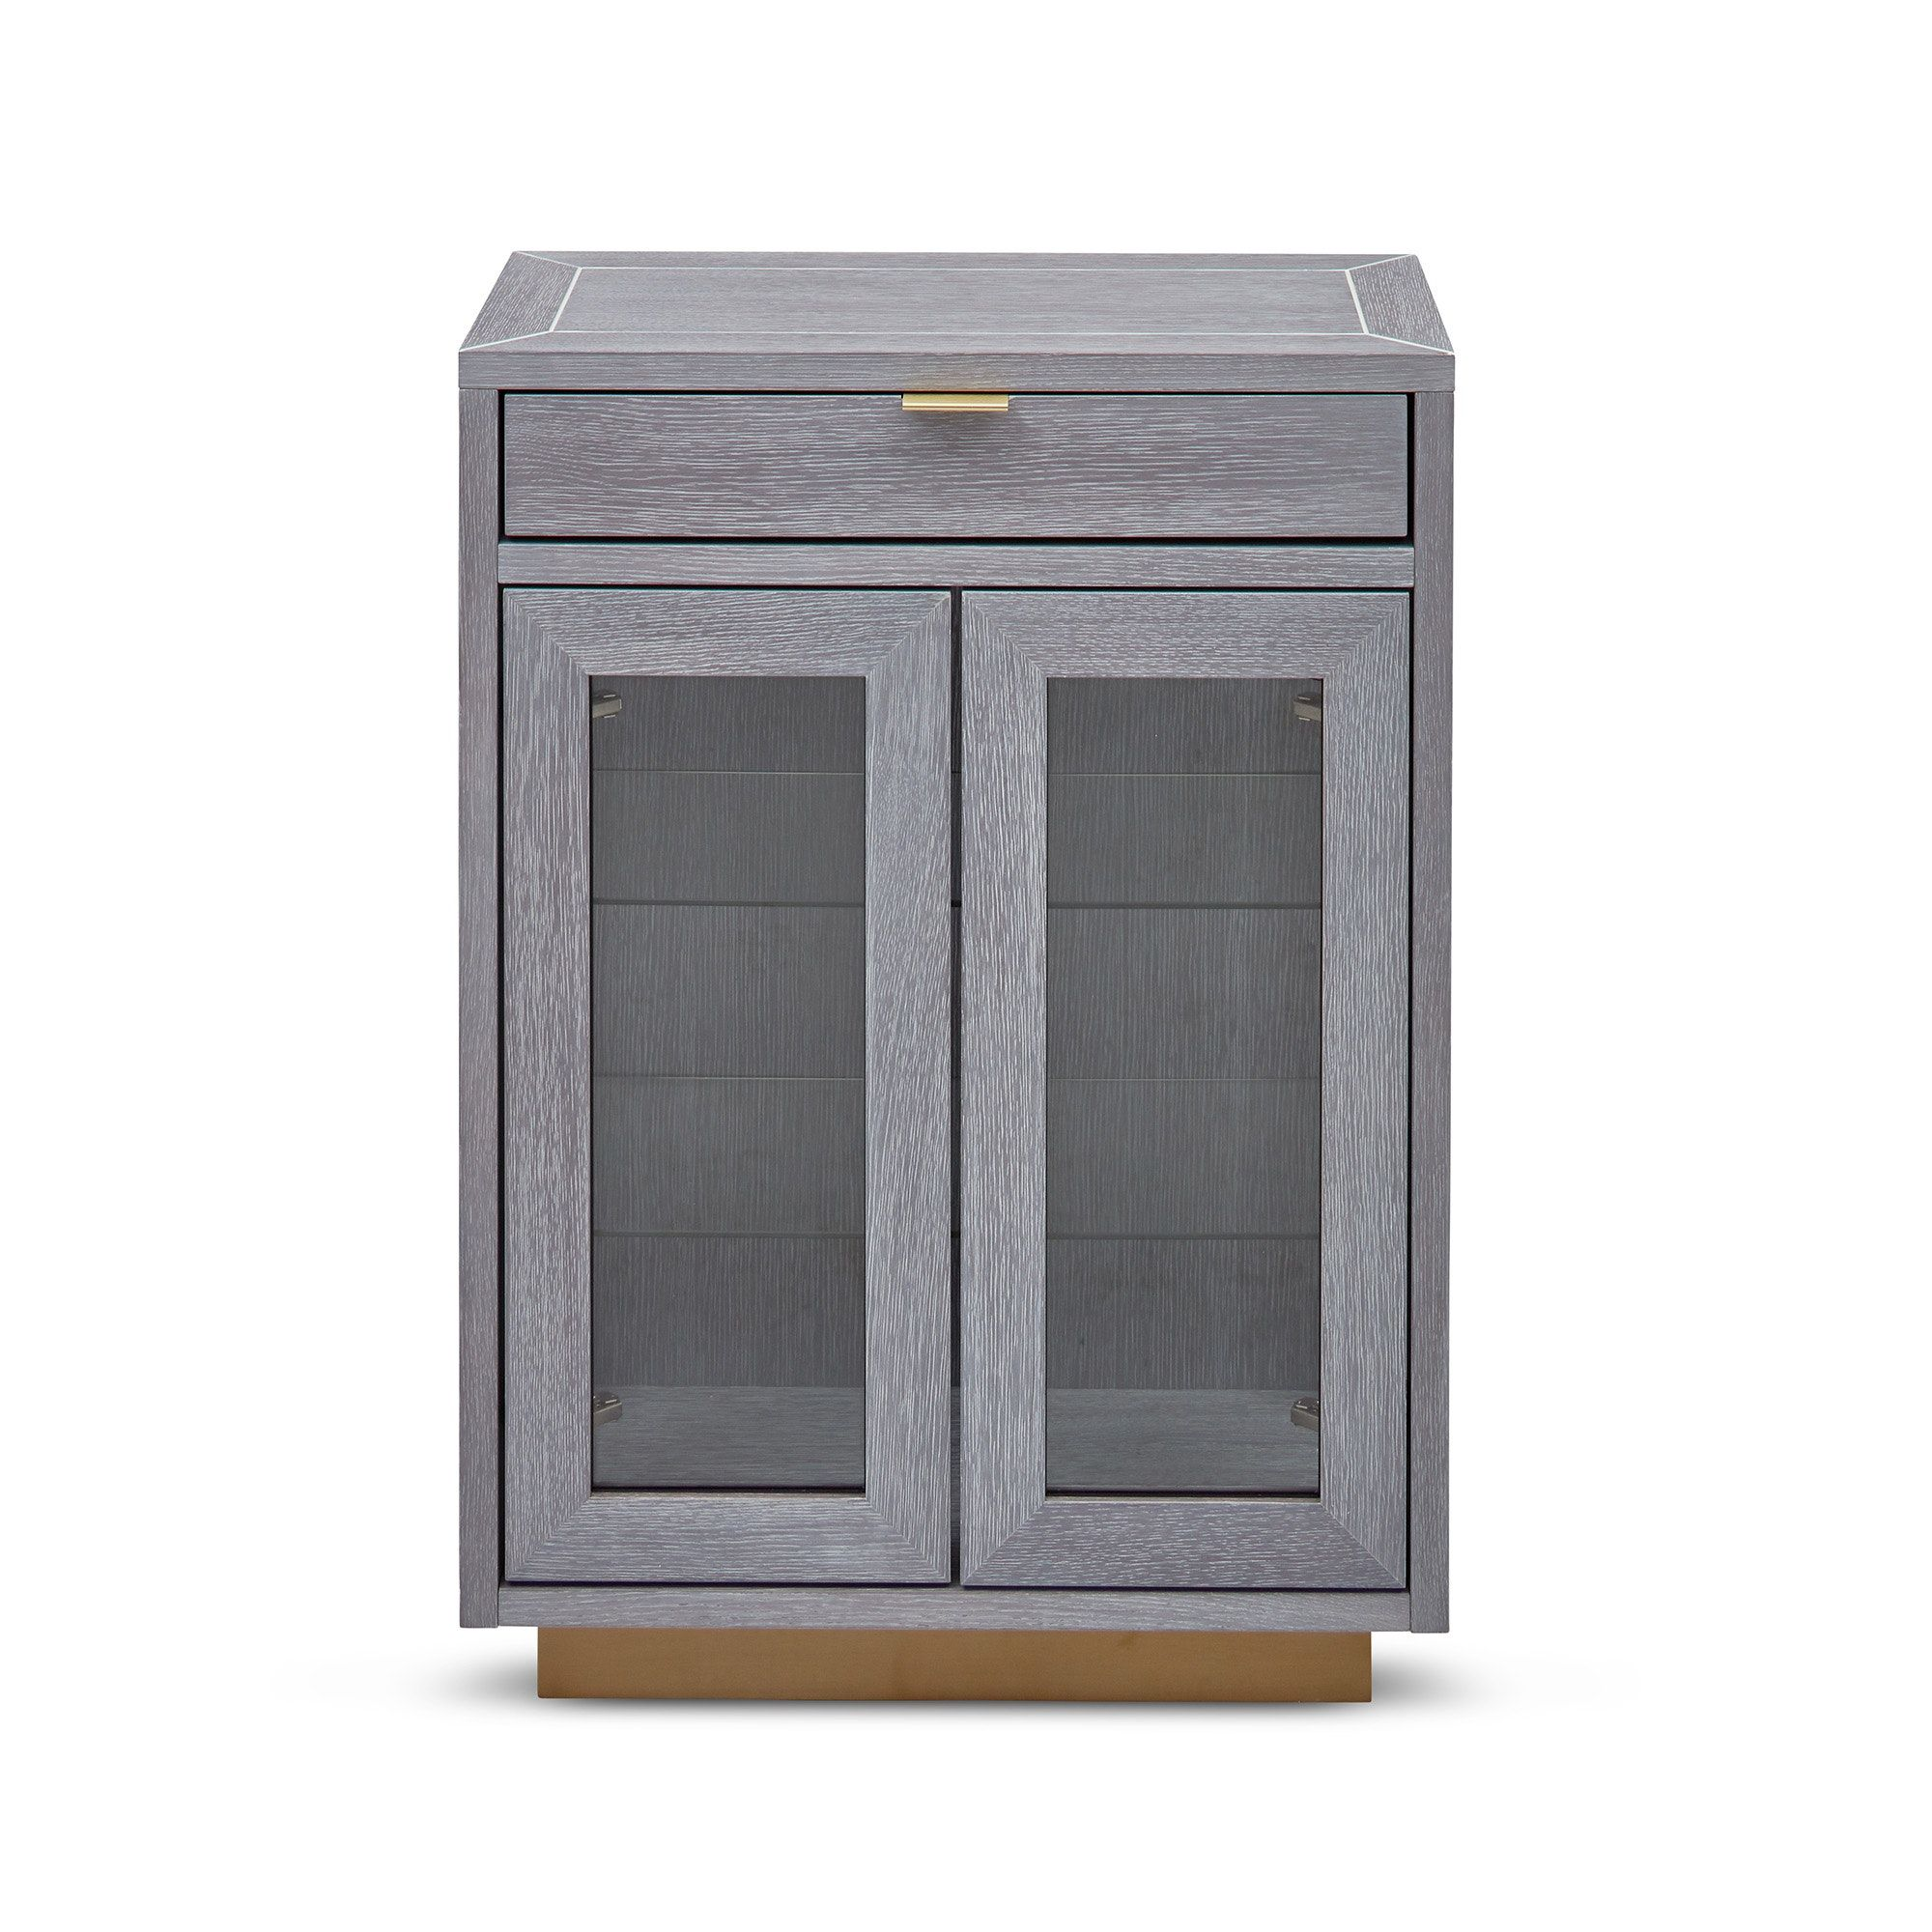 Buy Denton Bar Cabinet By Curated Kravet Made To Order Designer Furniture From Dering Hall S Collection Of Lounge Chairs Accent Cabinet Accent Doors Cabinet